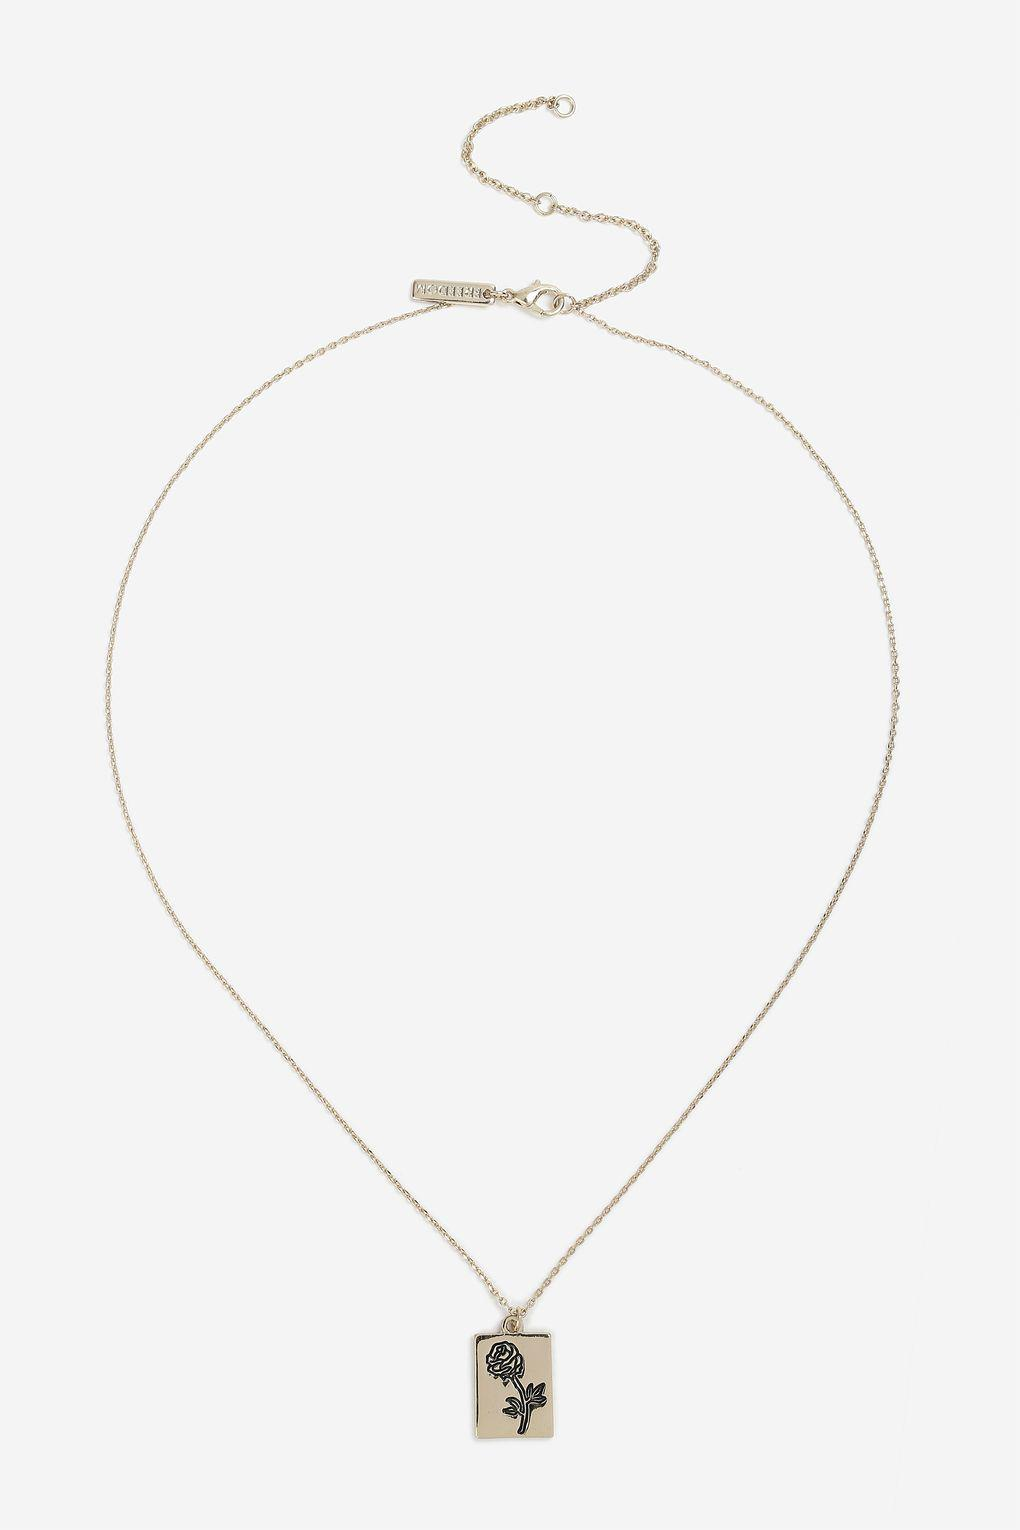 TOPSHOP Engraved Rose Pendant Ditsy Necklace in Gold (Metallic)